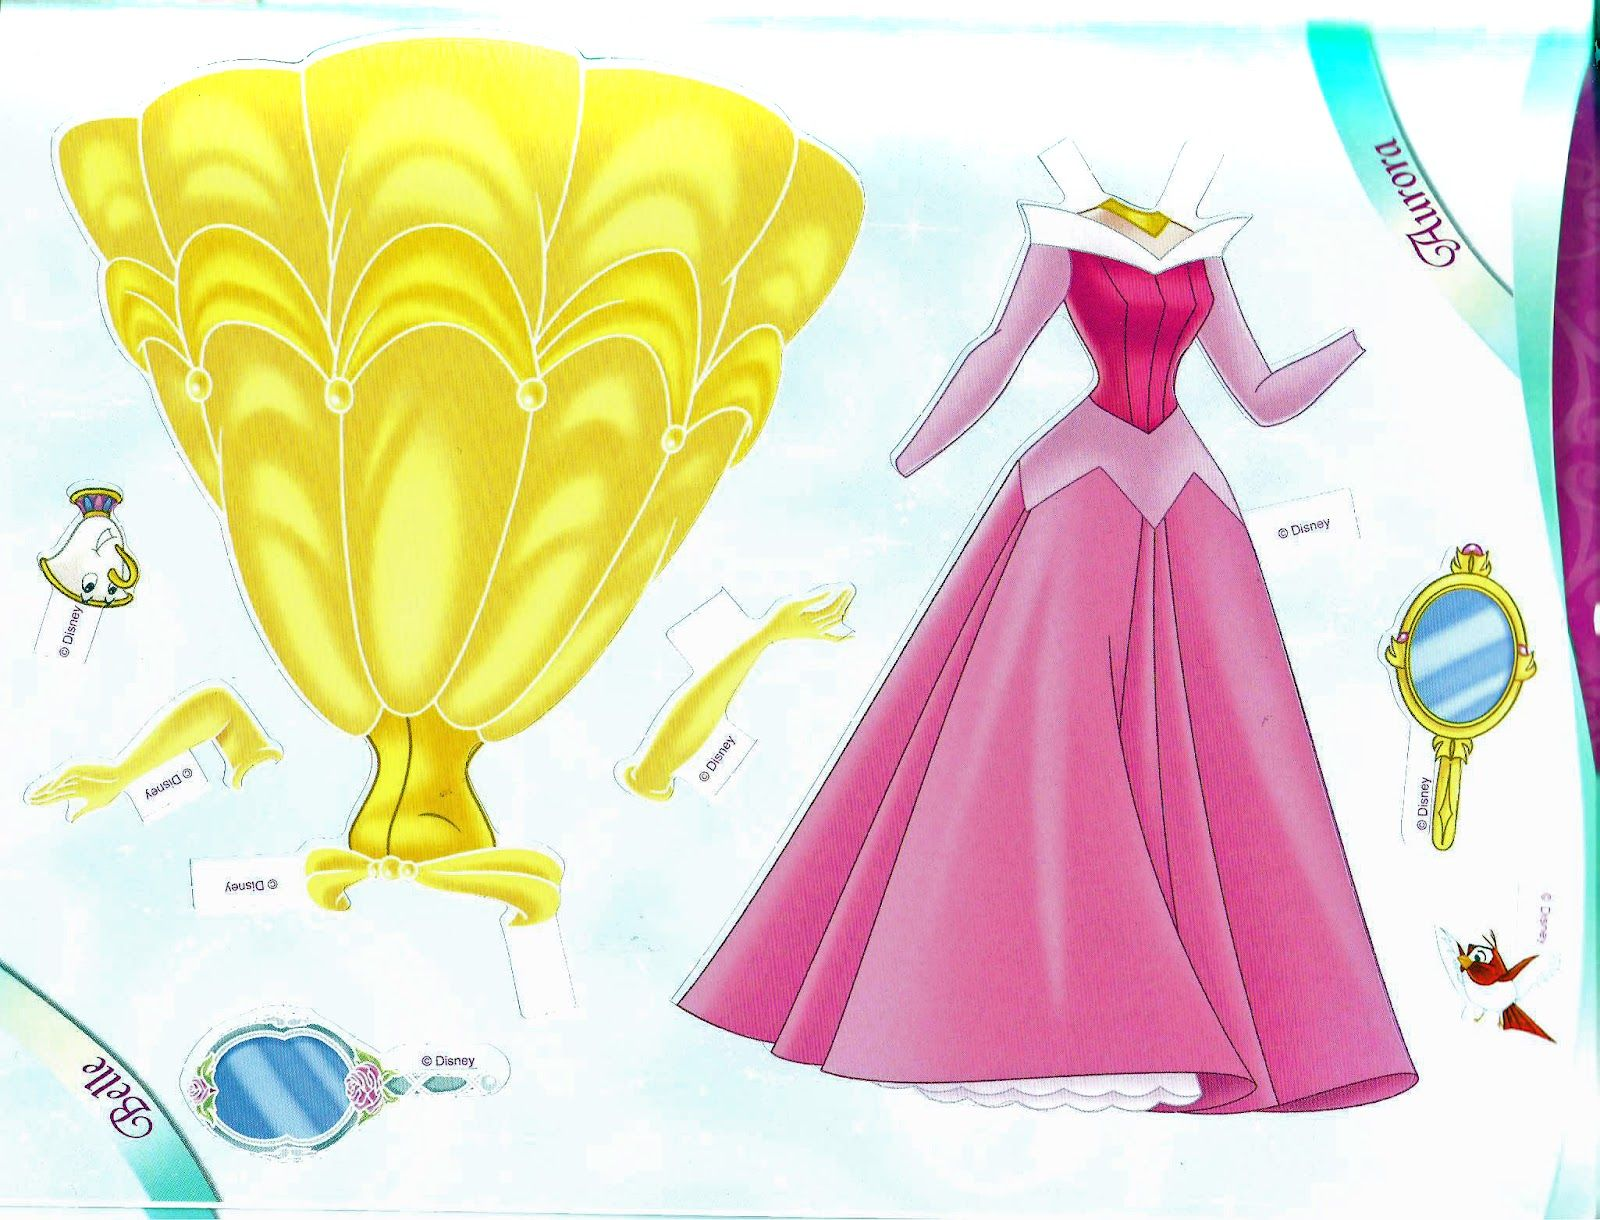 Dress up princess doll - Find This Pin And More On Disney Paper Dolls All Dressed Up Disney Princess